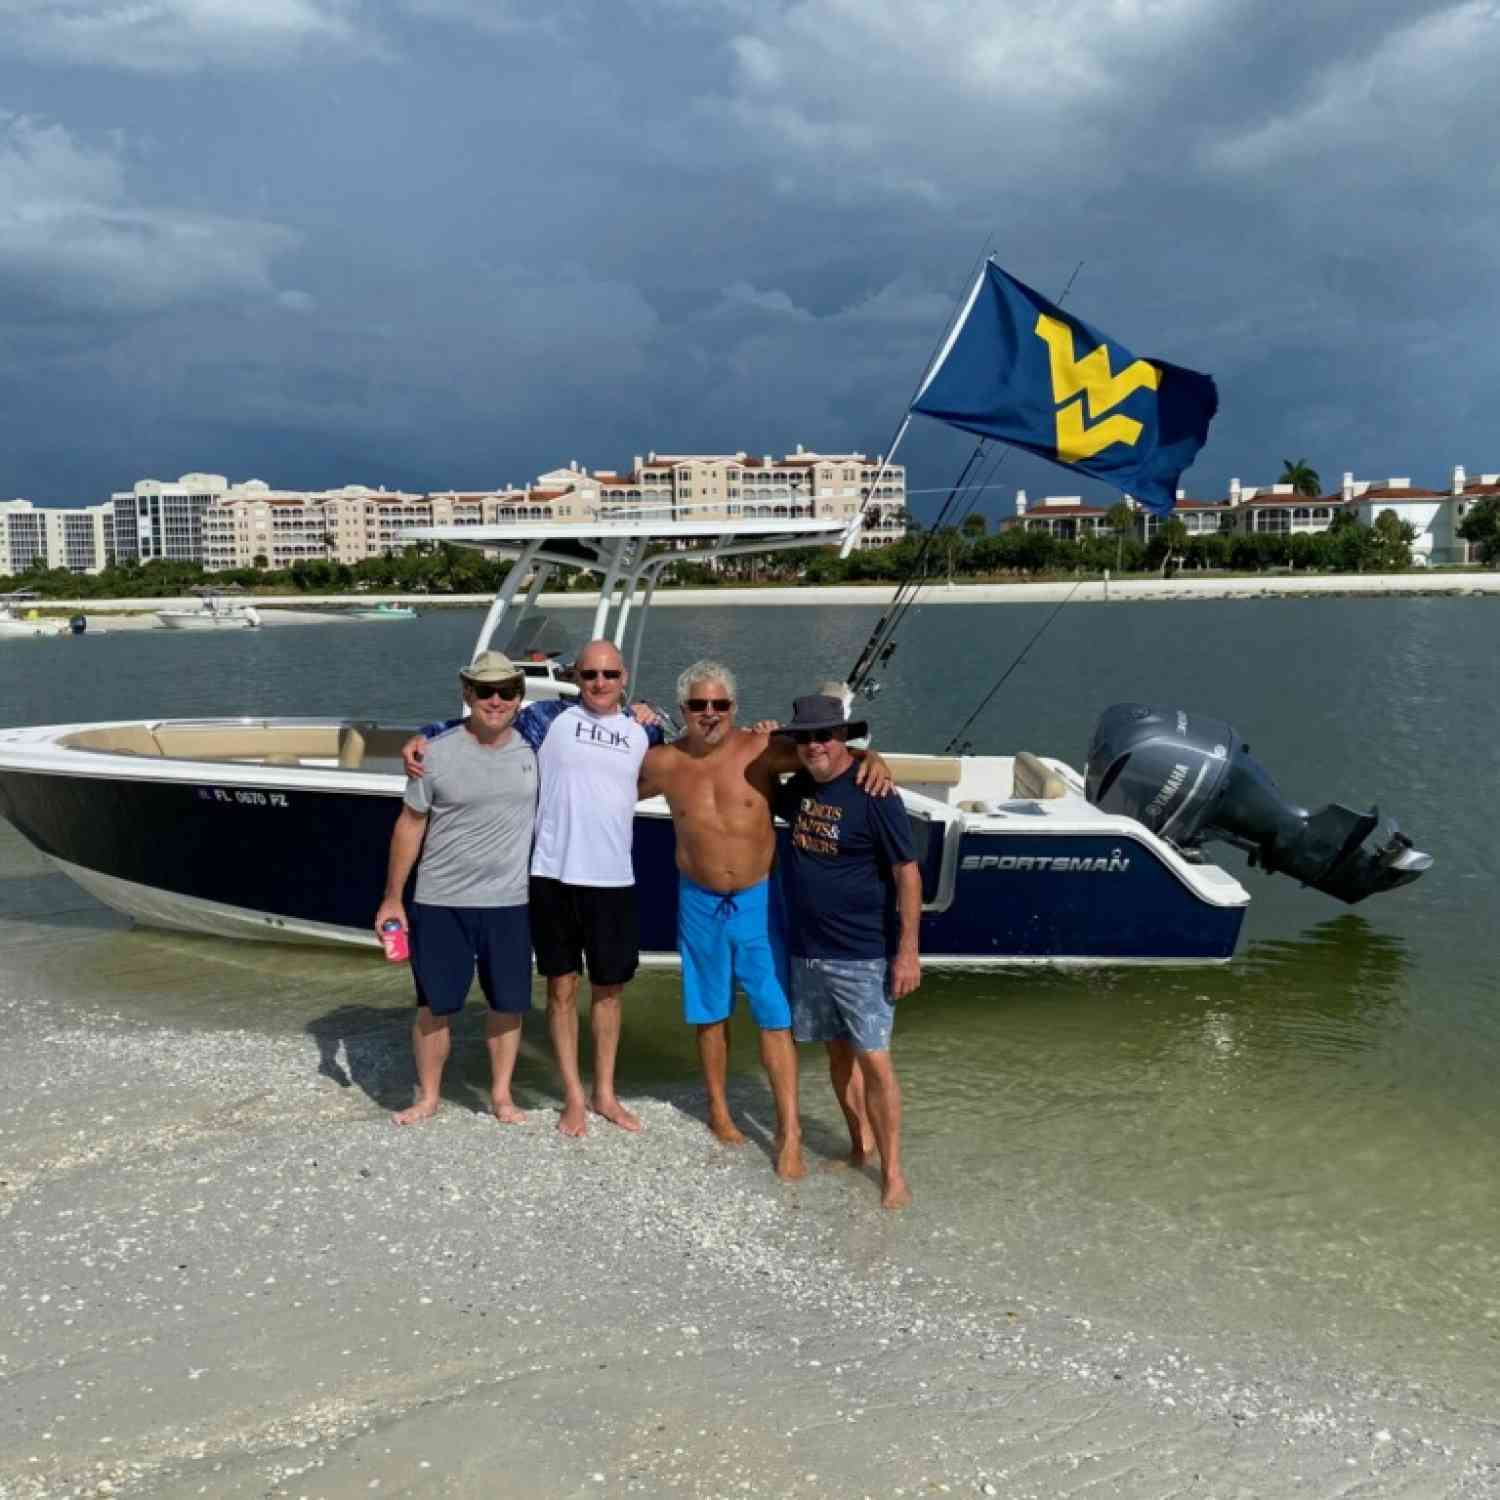 Title: Flying our WV colors - On board their Sportsman Heritage 251 Center Console - Location: Marco Island. Participating in the Photo Contest #SportsmanFebruary2021